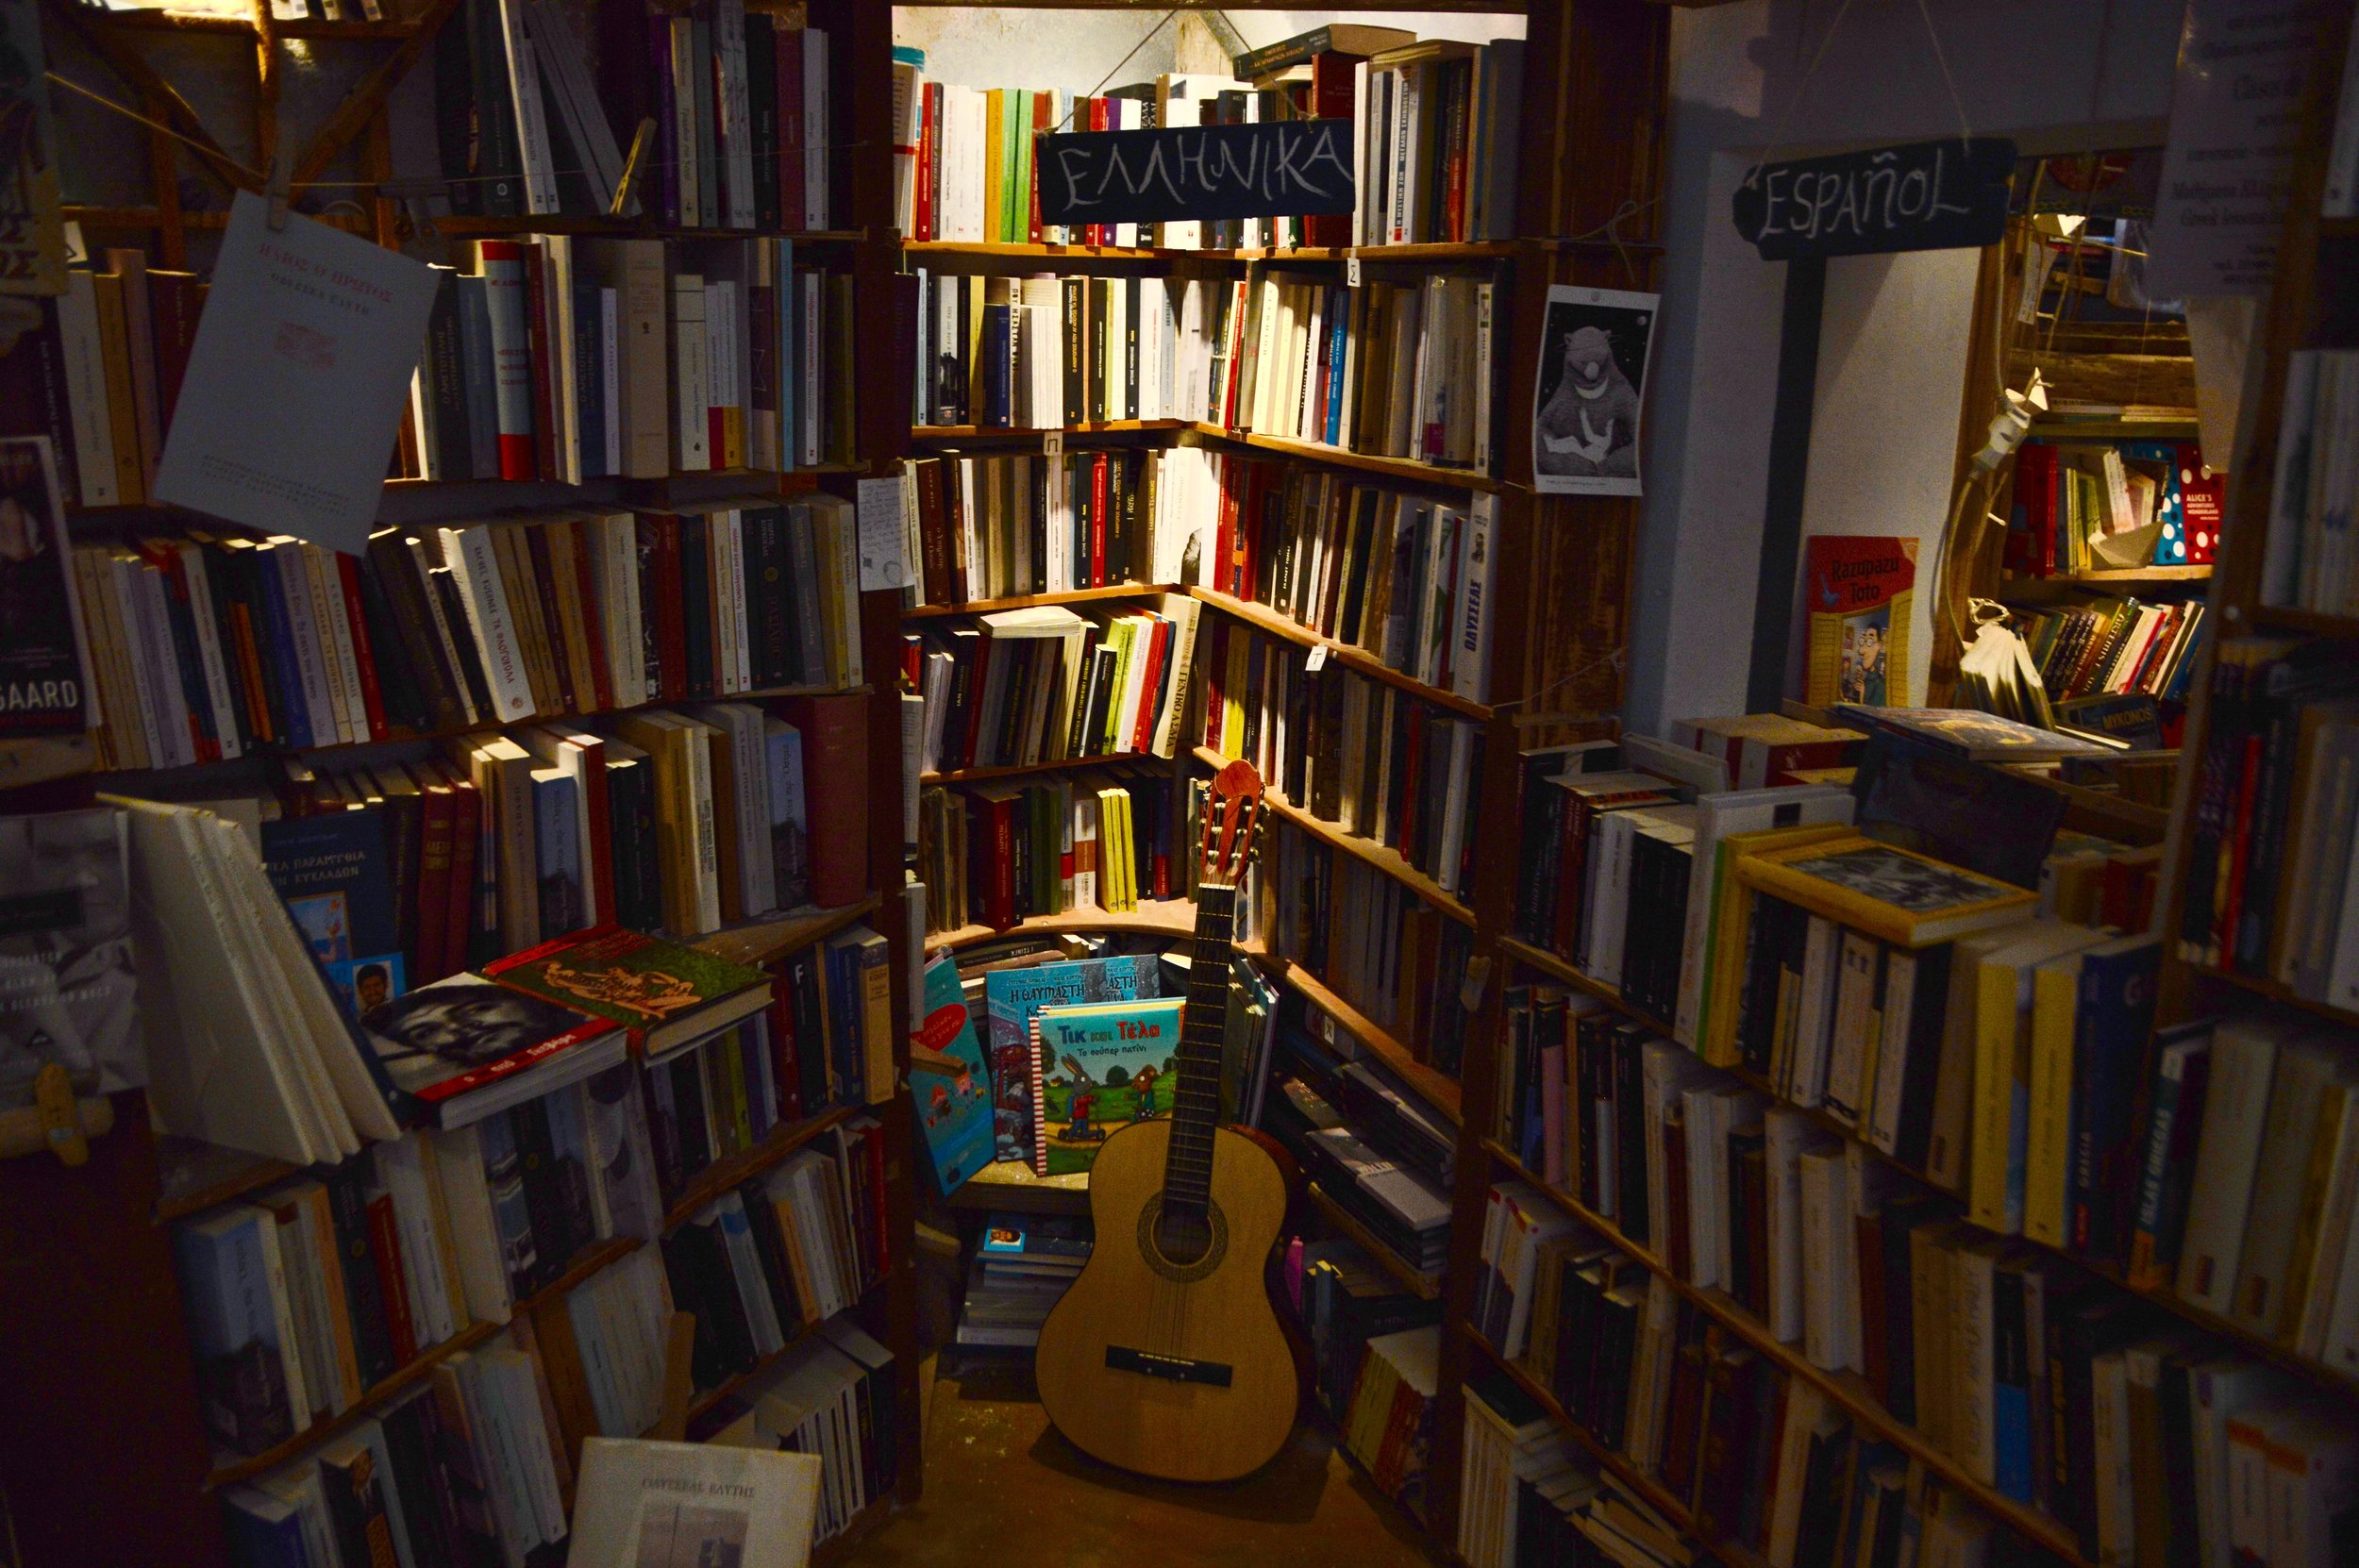 At this Santorini Bookshop, Atlantis Books, you'll find a guitar, just because.